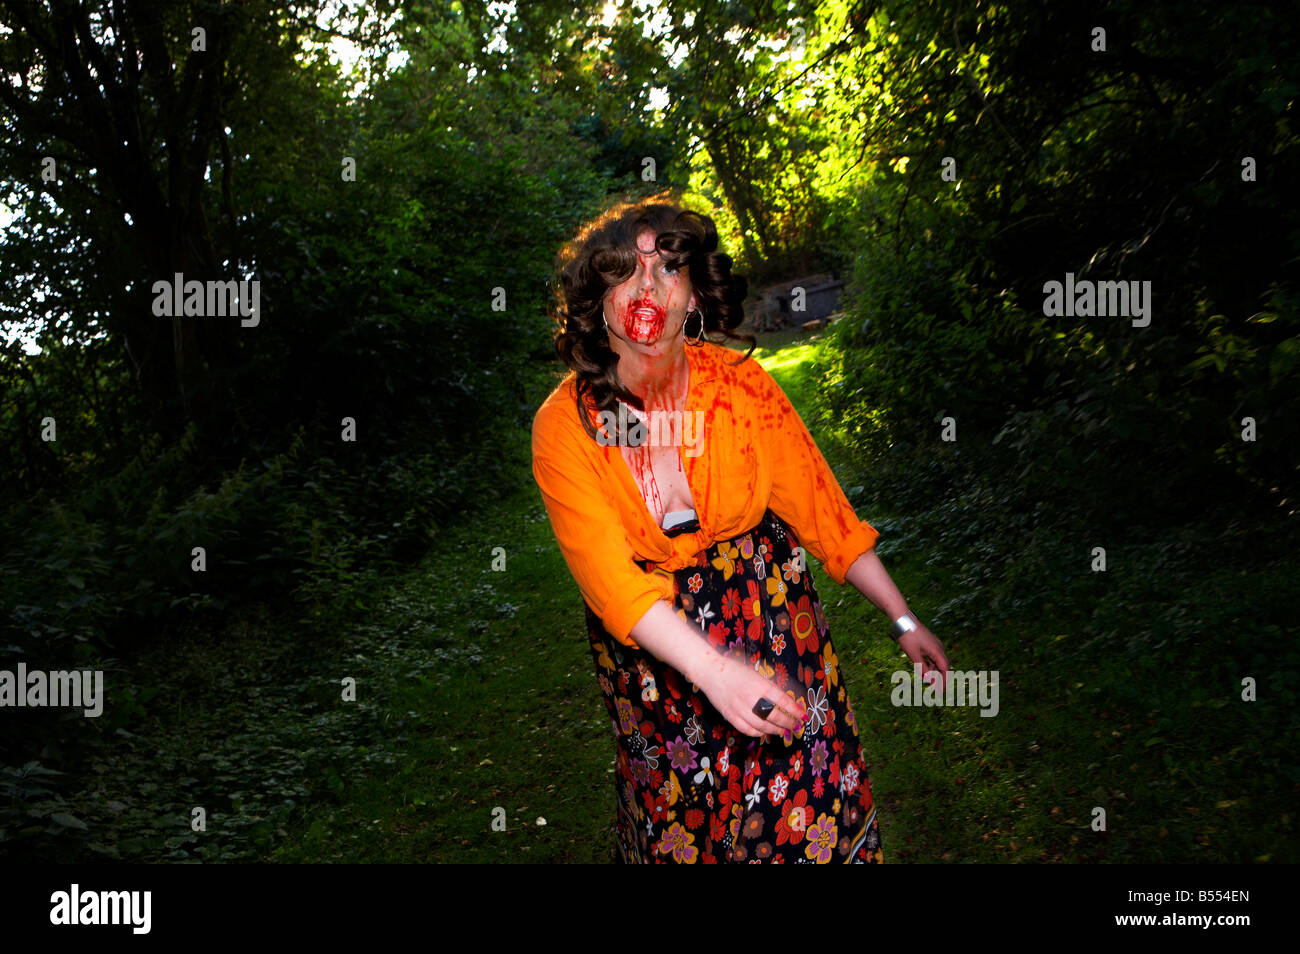 A woman dressed as a zombie walks through the woods - Stock Image